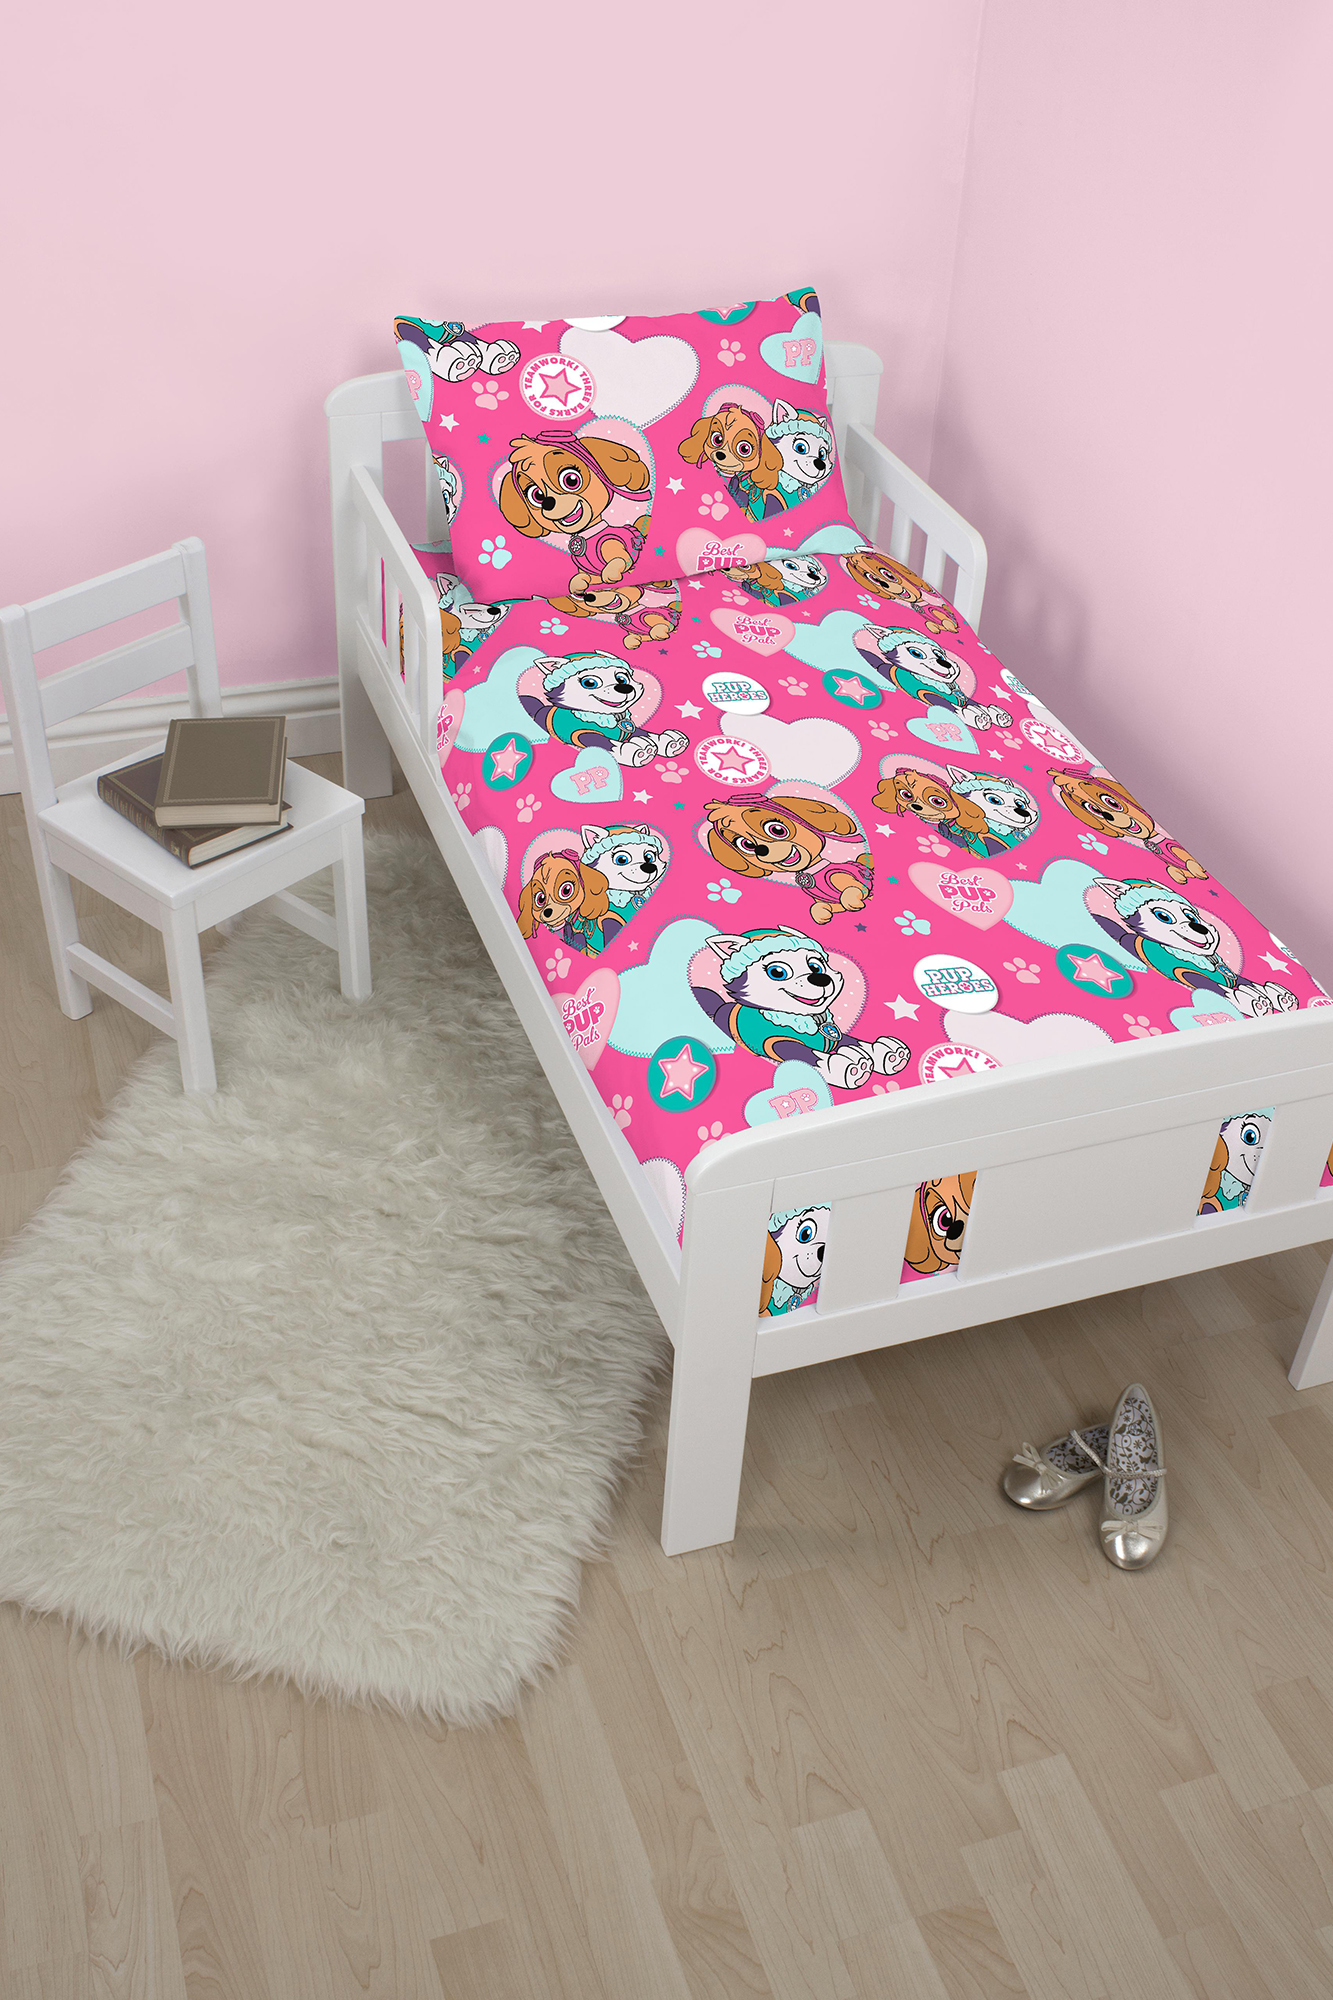 neu paw patrol kinderbett kleinkind baby steppdecke. Black Bedroom Furniture Sets. Home Design Ideas